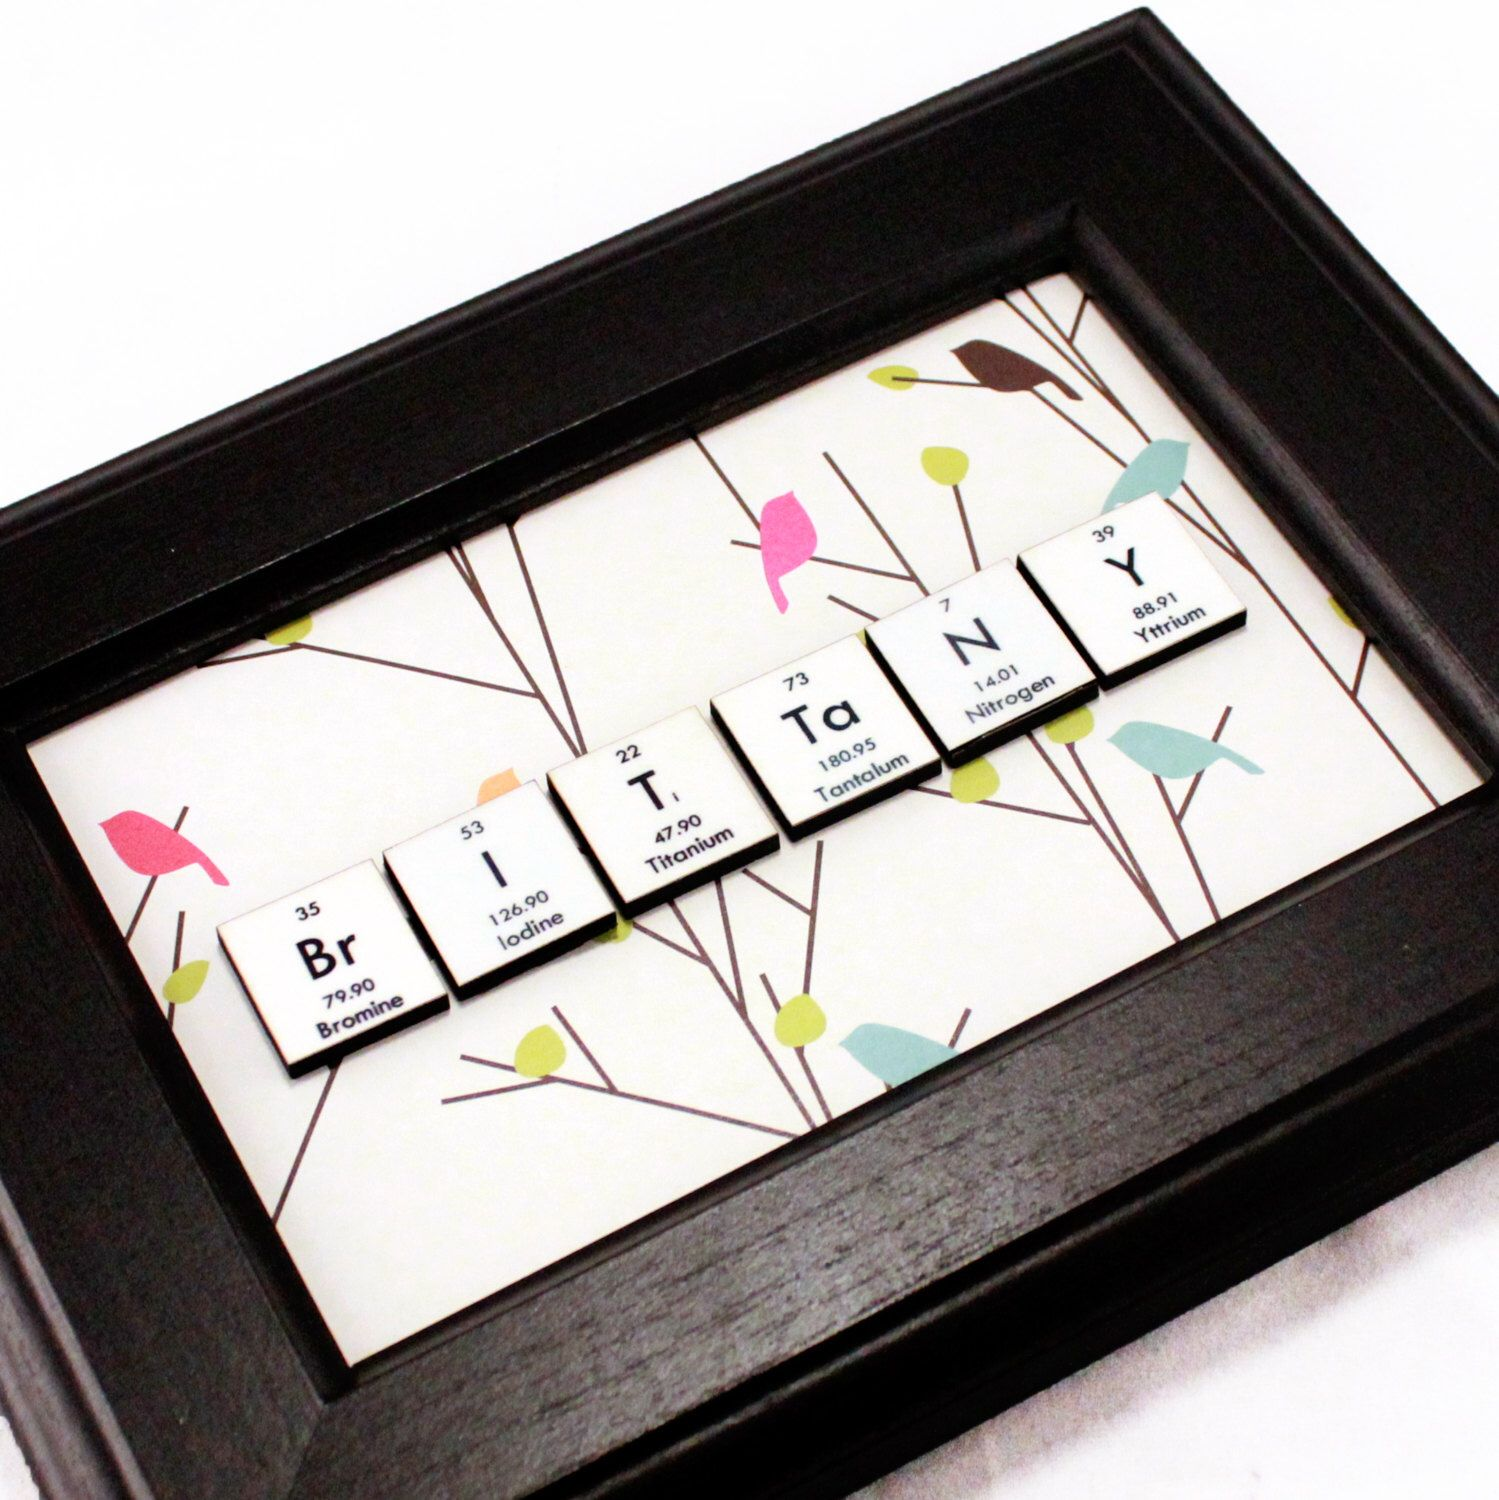 Chemistry science giftpersonalized periodic table of elements chemistry science giftpersonalized periodic table of elements name signscience decorgeekypretty birds gamestrikefo Choice Image